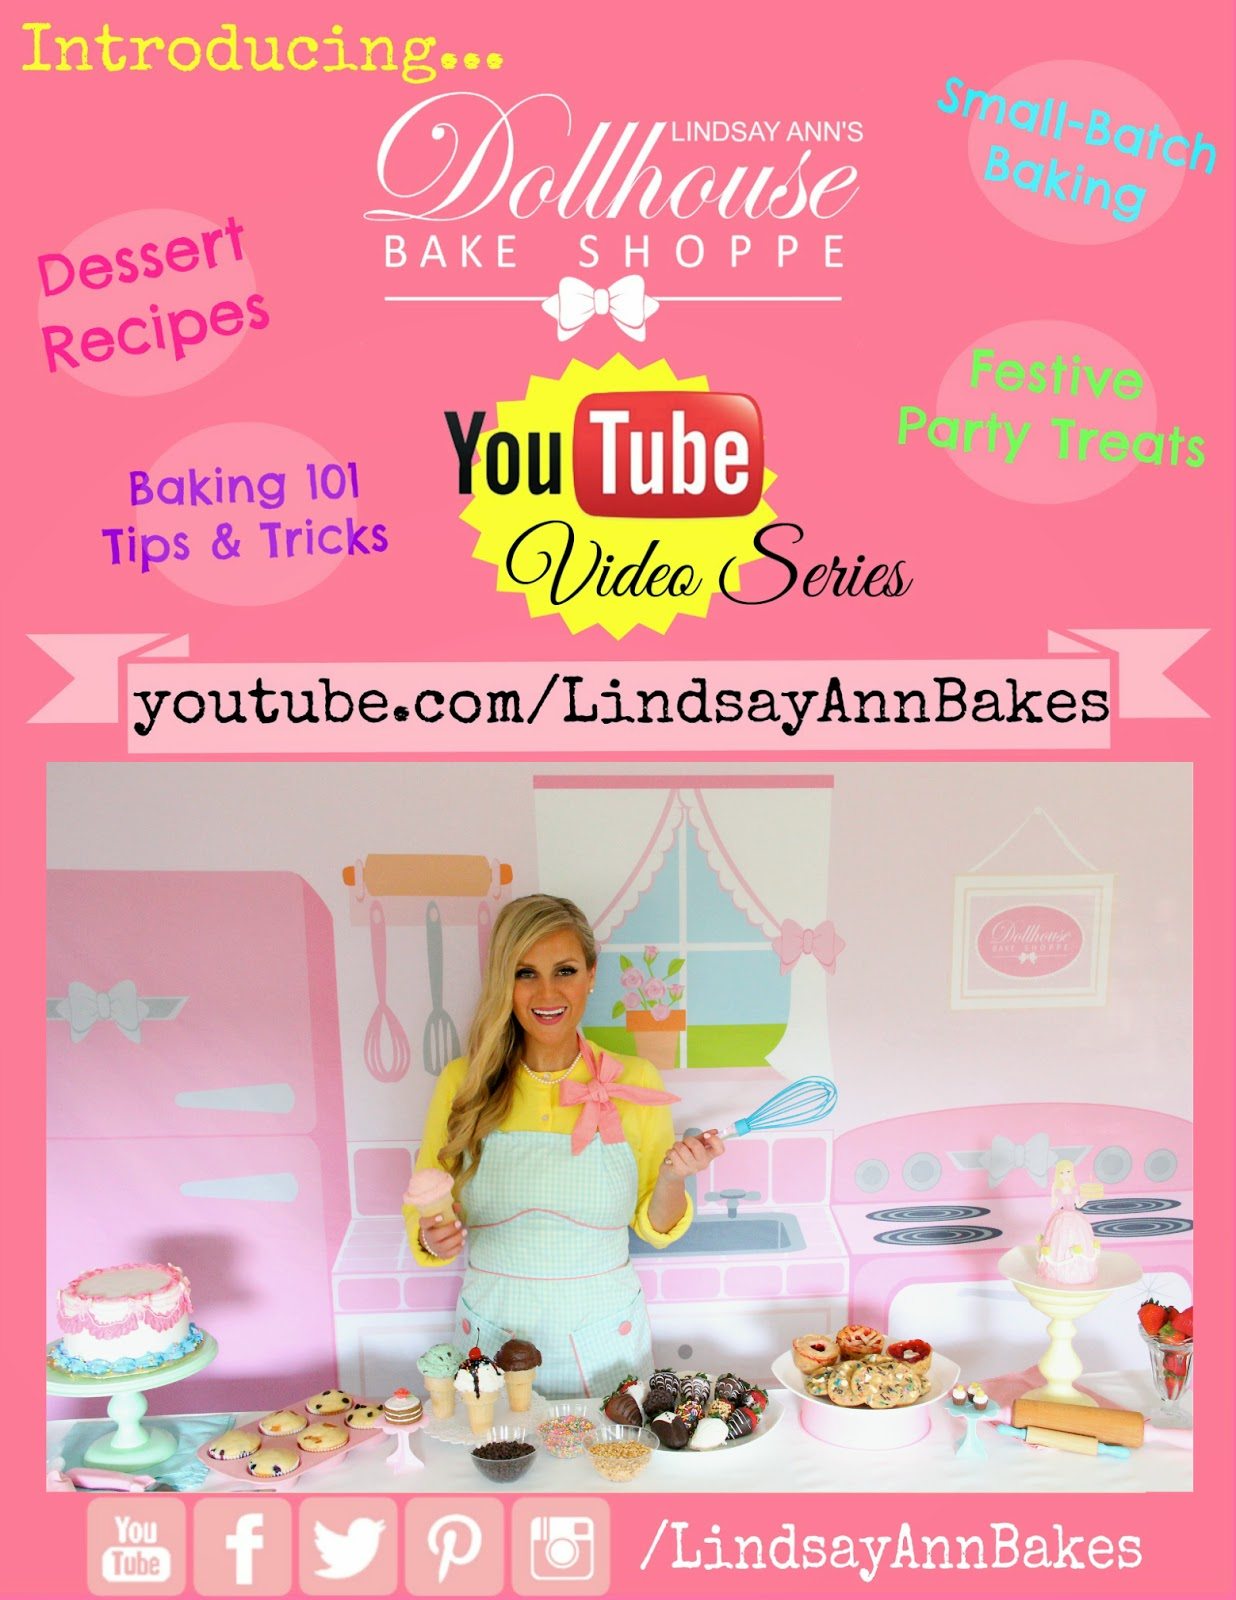 http://www.youtube.com/user/lindsayannbakes?sub_confirmation=1